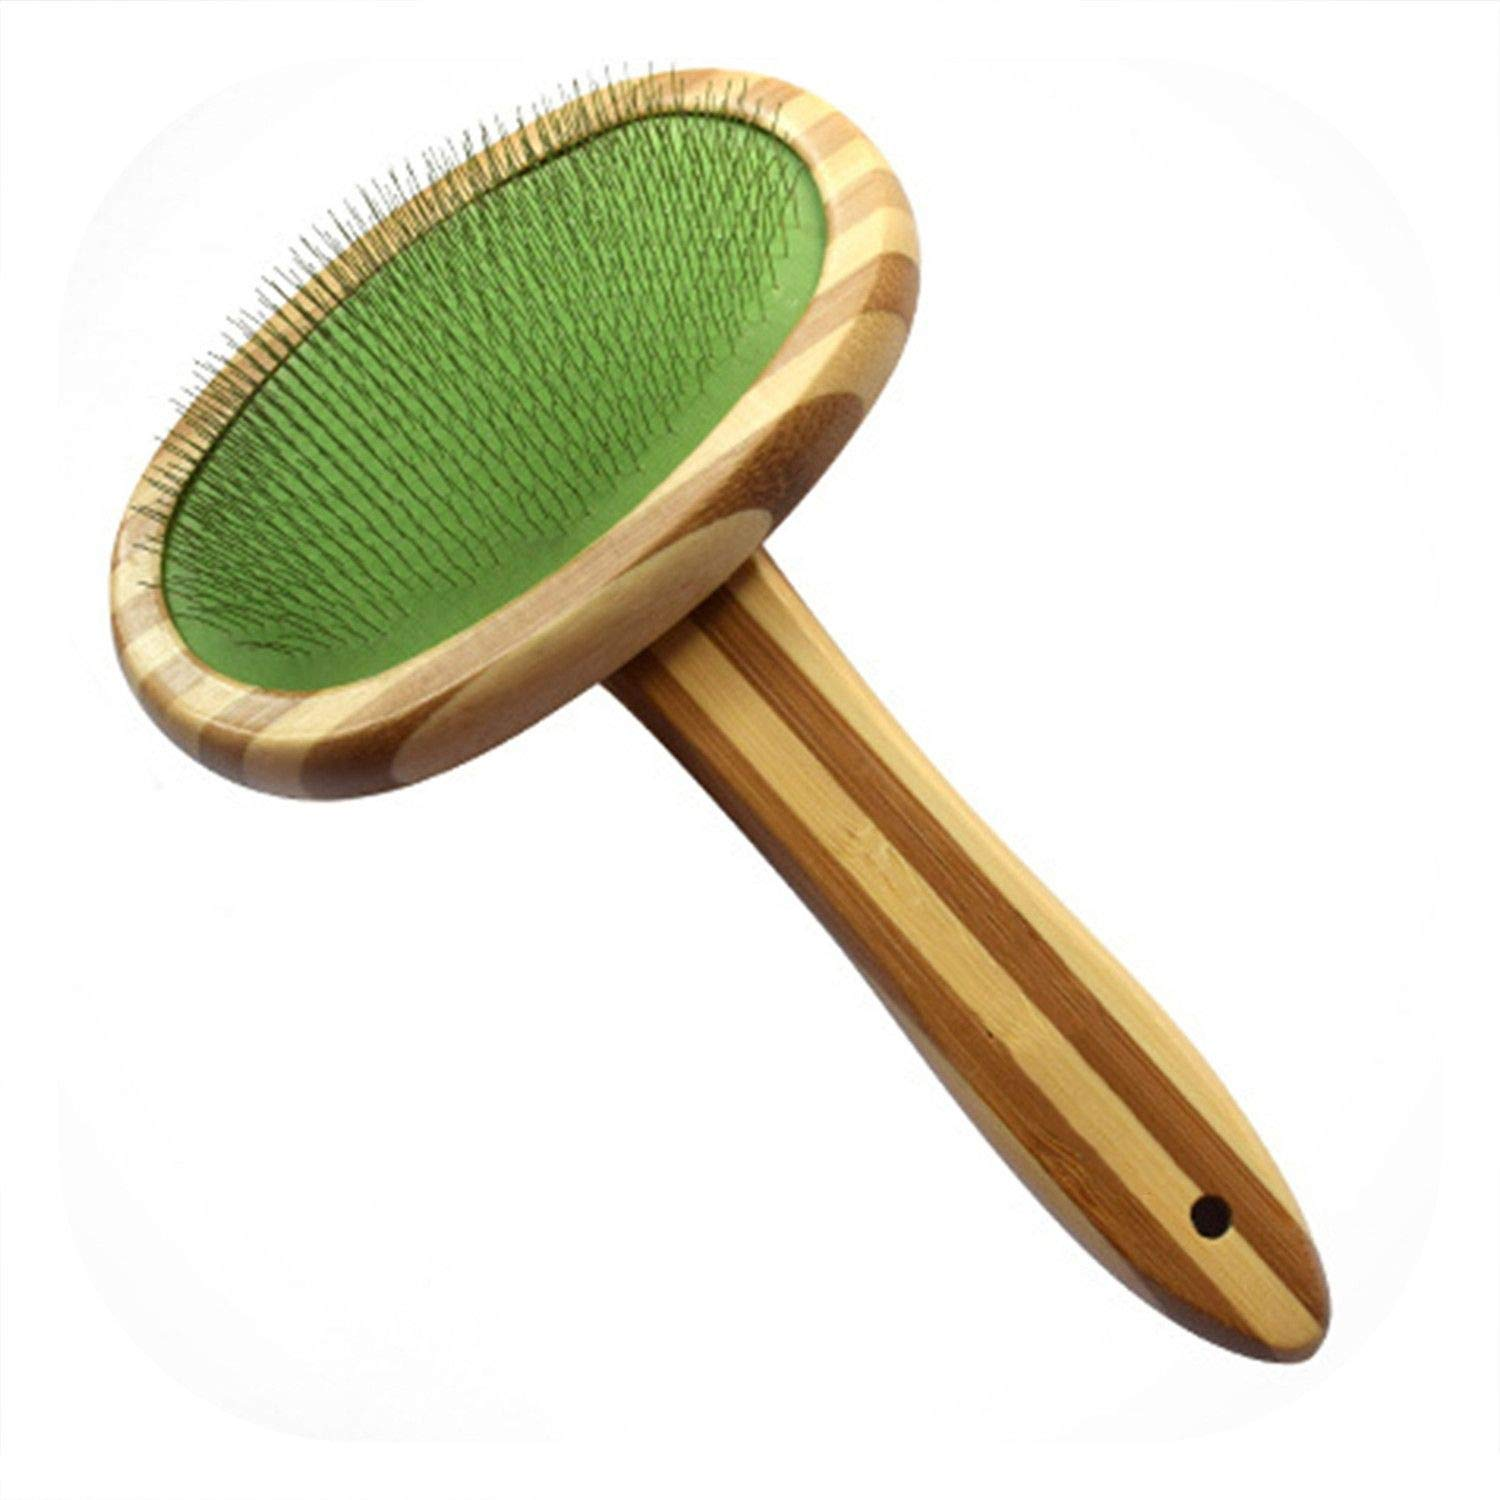 PG-One Animals Pet Hair Grooming Comb for Dogs Cat Dog Brush Cleaning Grooming Remove Floating Tool Wood Pet Supplies,White,Open Hair Comb